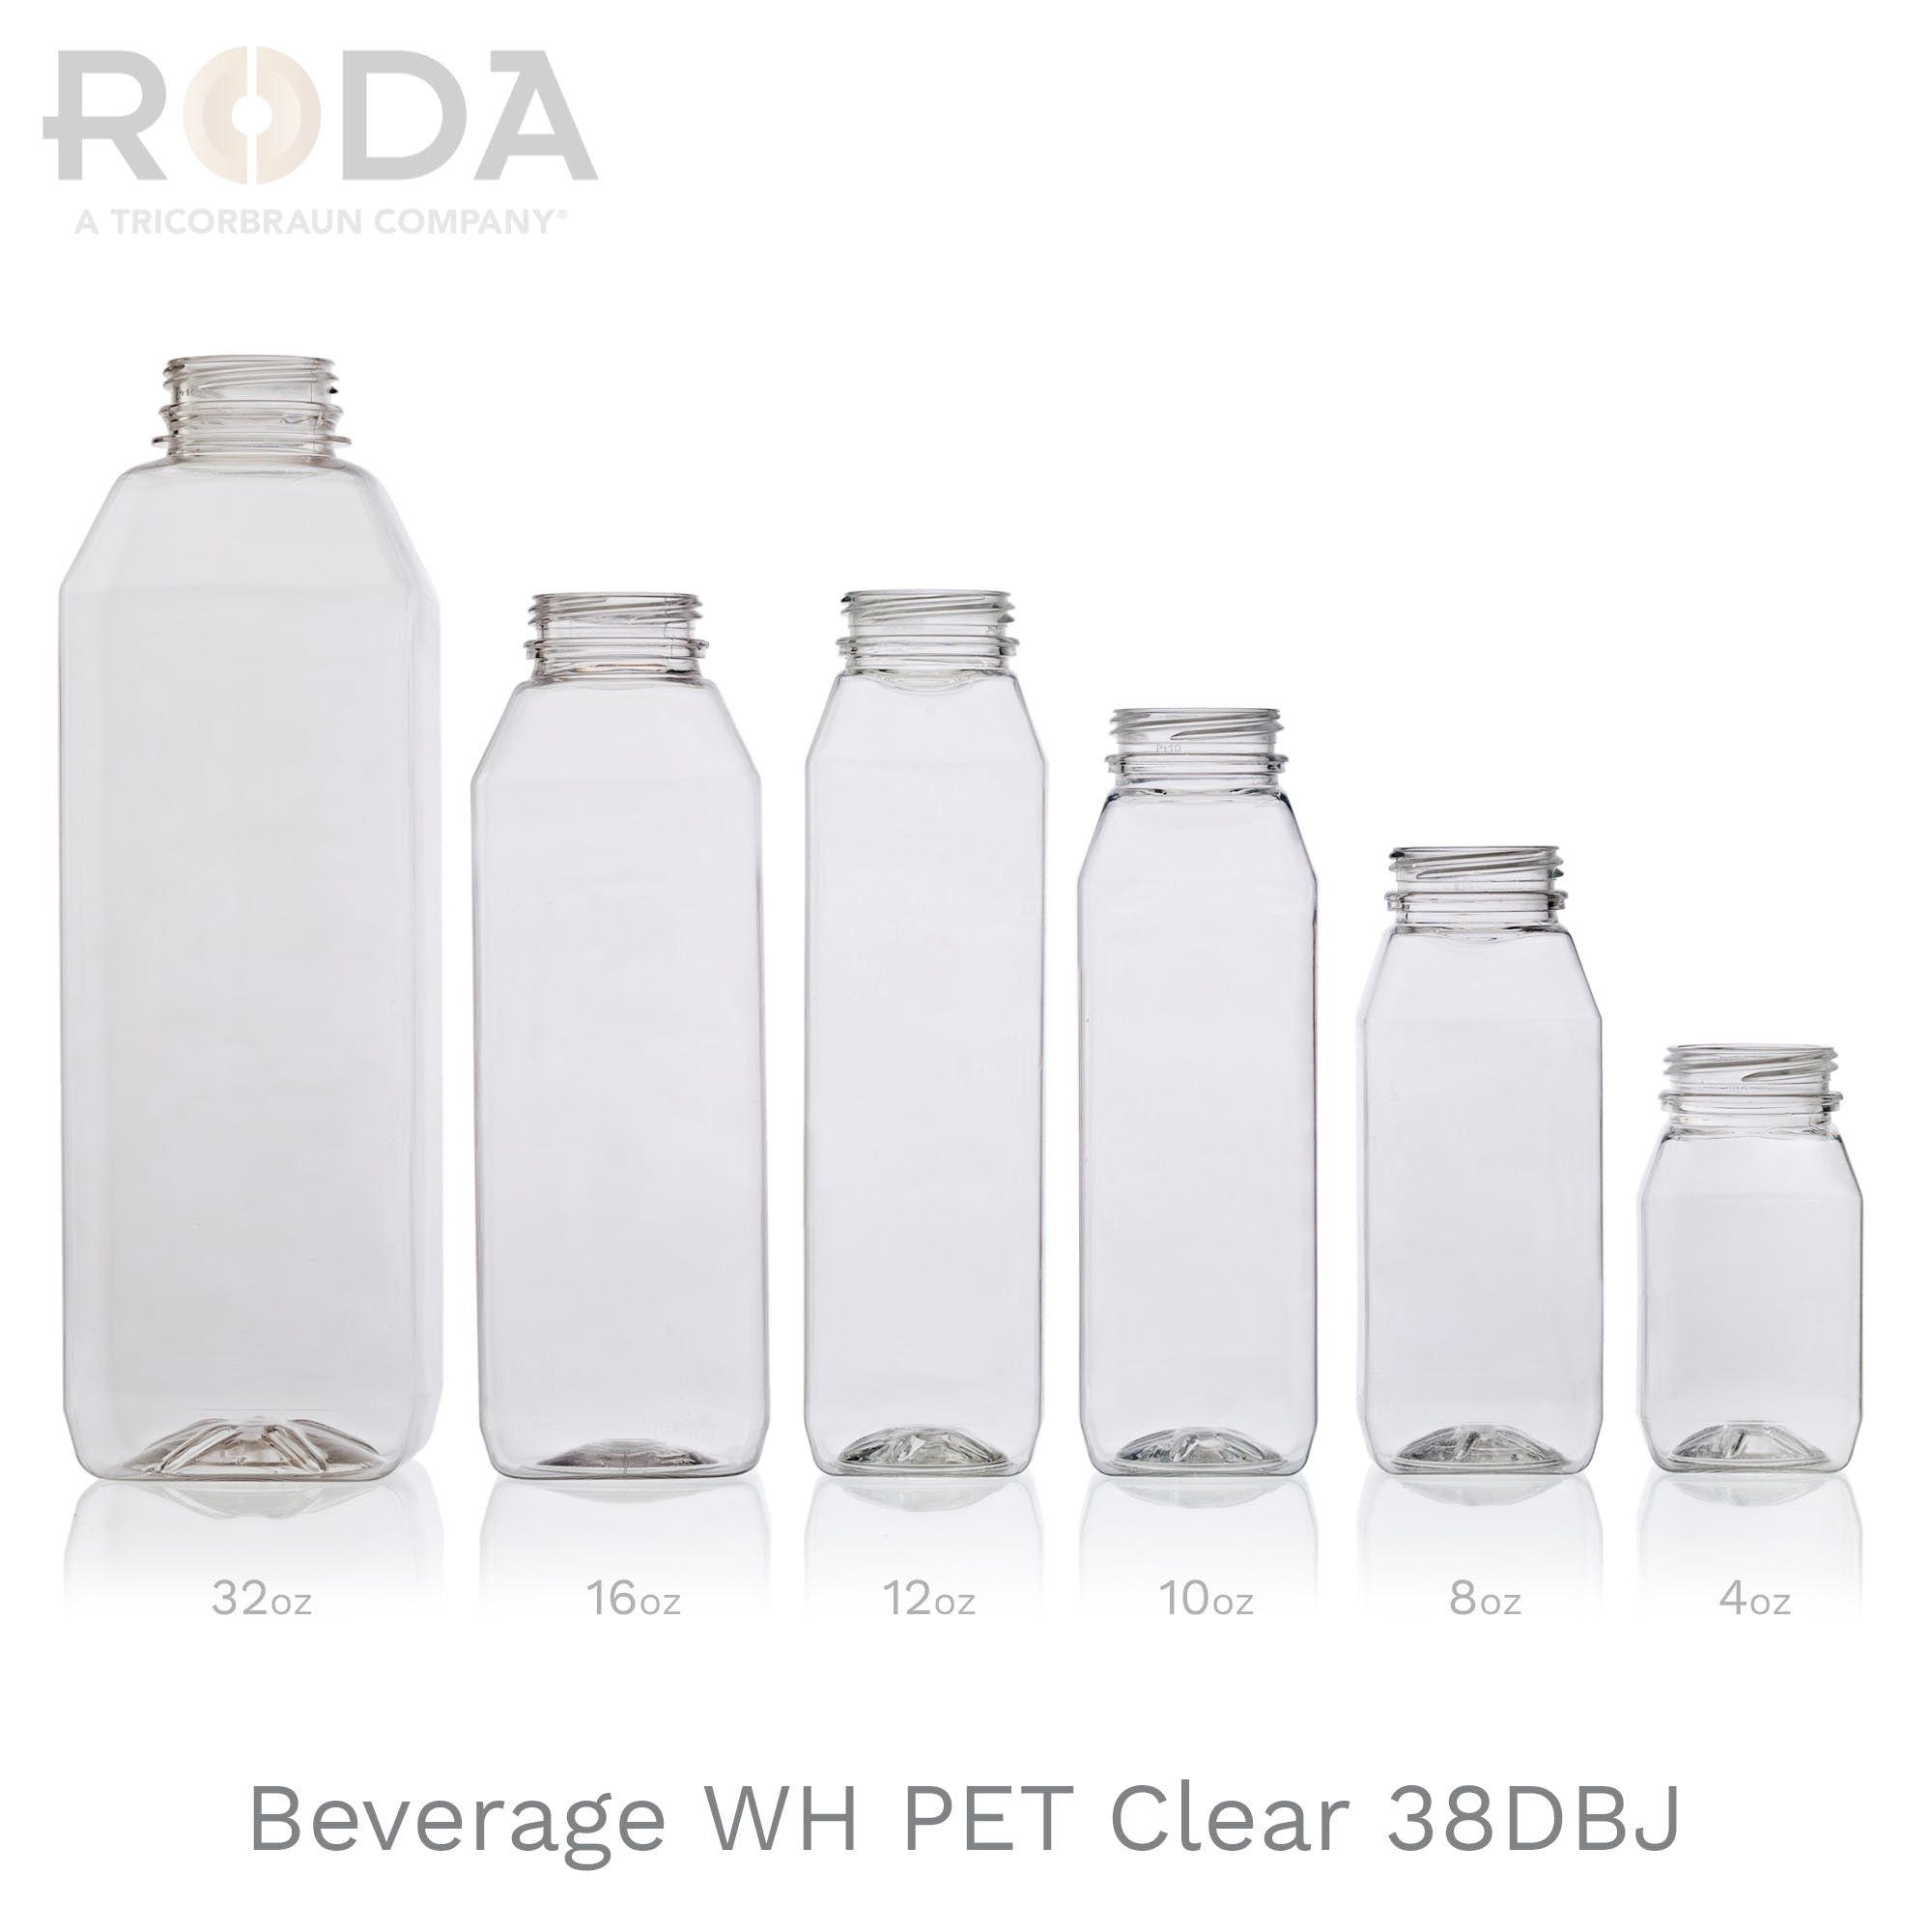 Beverage WH Square PET Clear 38DBJ